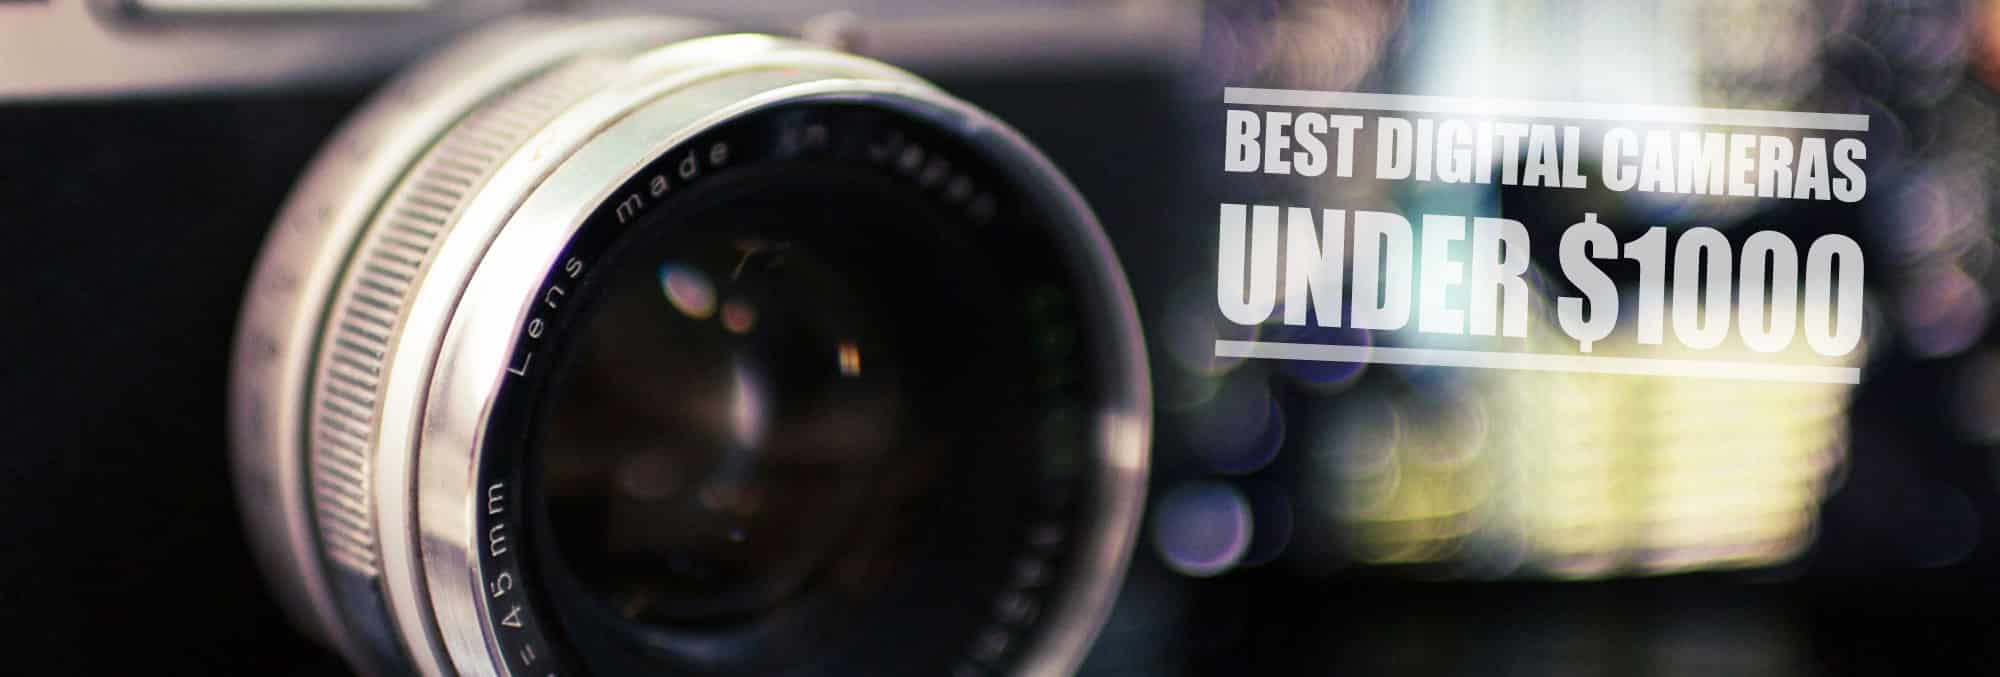 Best Digital Cameras Under 1000 Dollars - Reviews and Guide